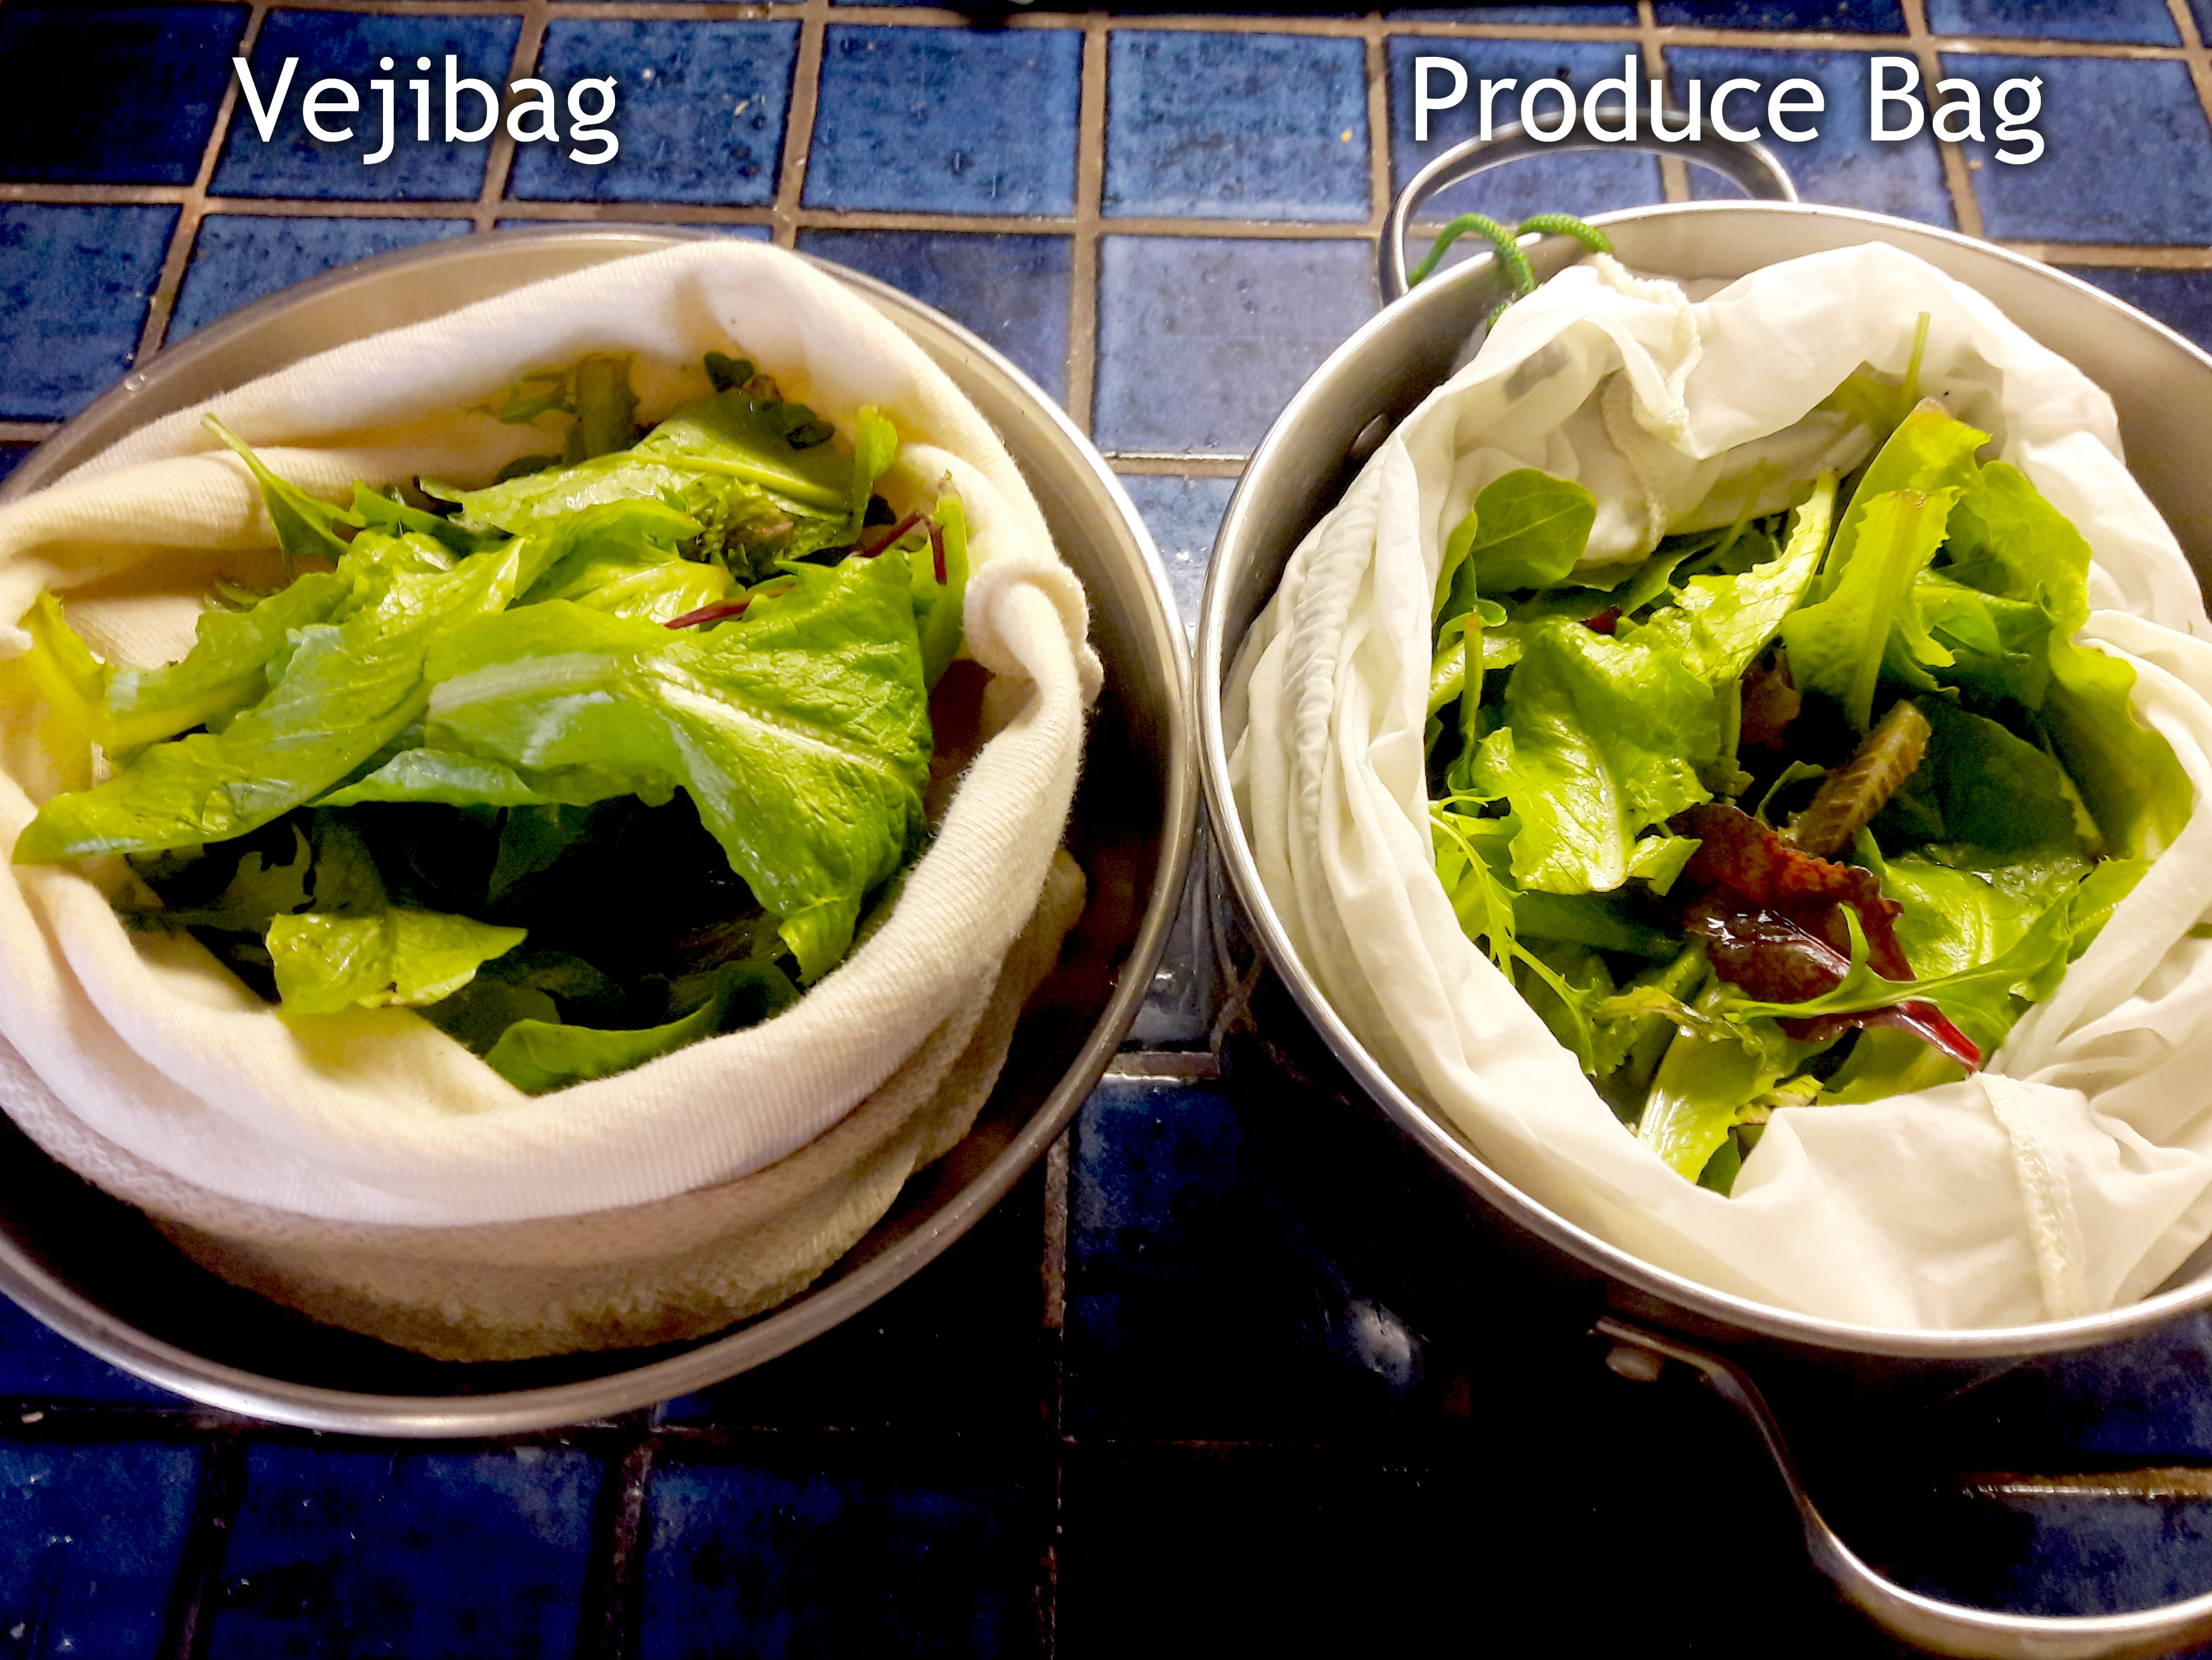 Jan 21, · Store the cabbage in the crisper of your fridge. Keeping your cabbage cold will help it retain its nutrients and crisp texture. Place inside a plastic bag first. It should stay in prime condition for up to two weeks. If you have purchased Savoy cabbage, only store it in your refrigerator for one week%(25).